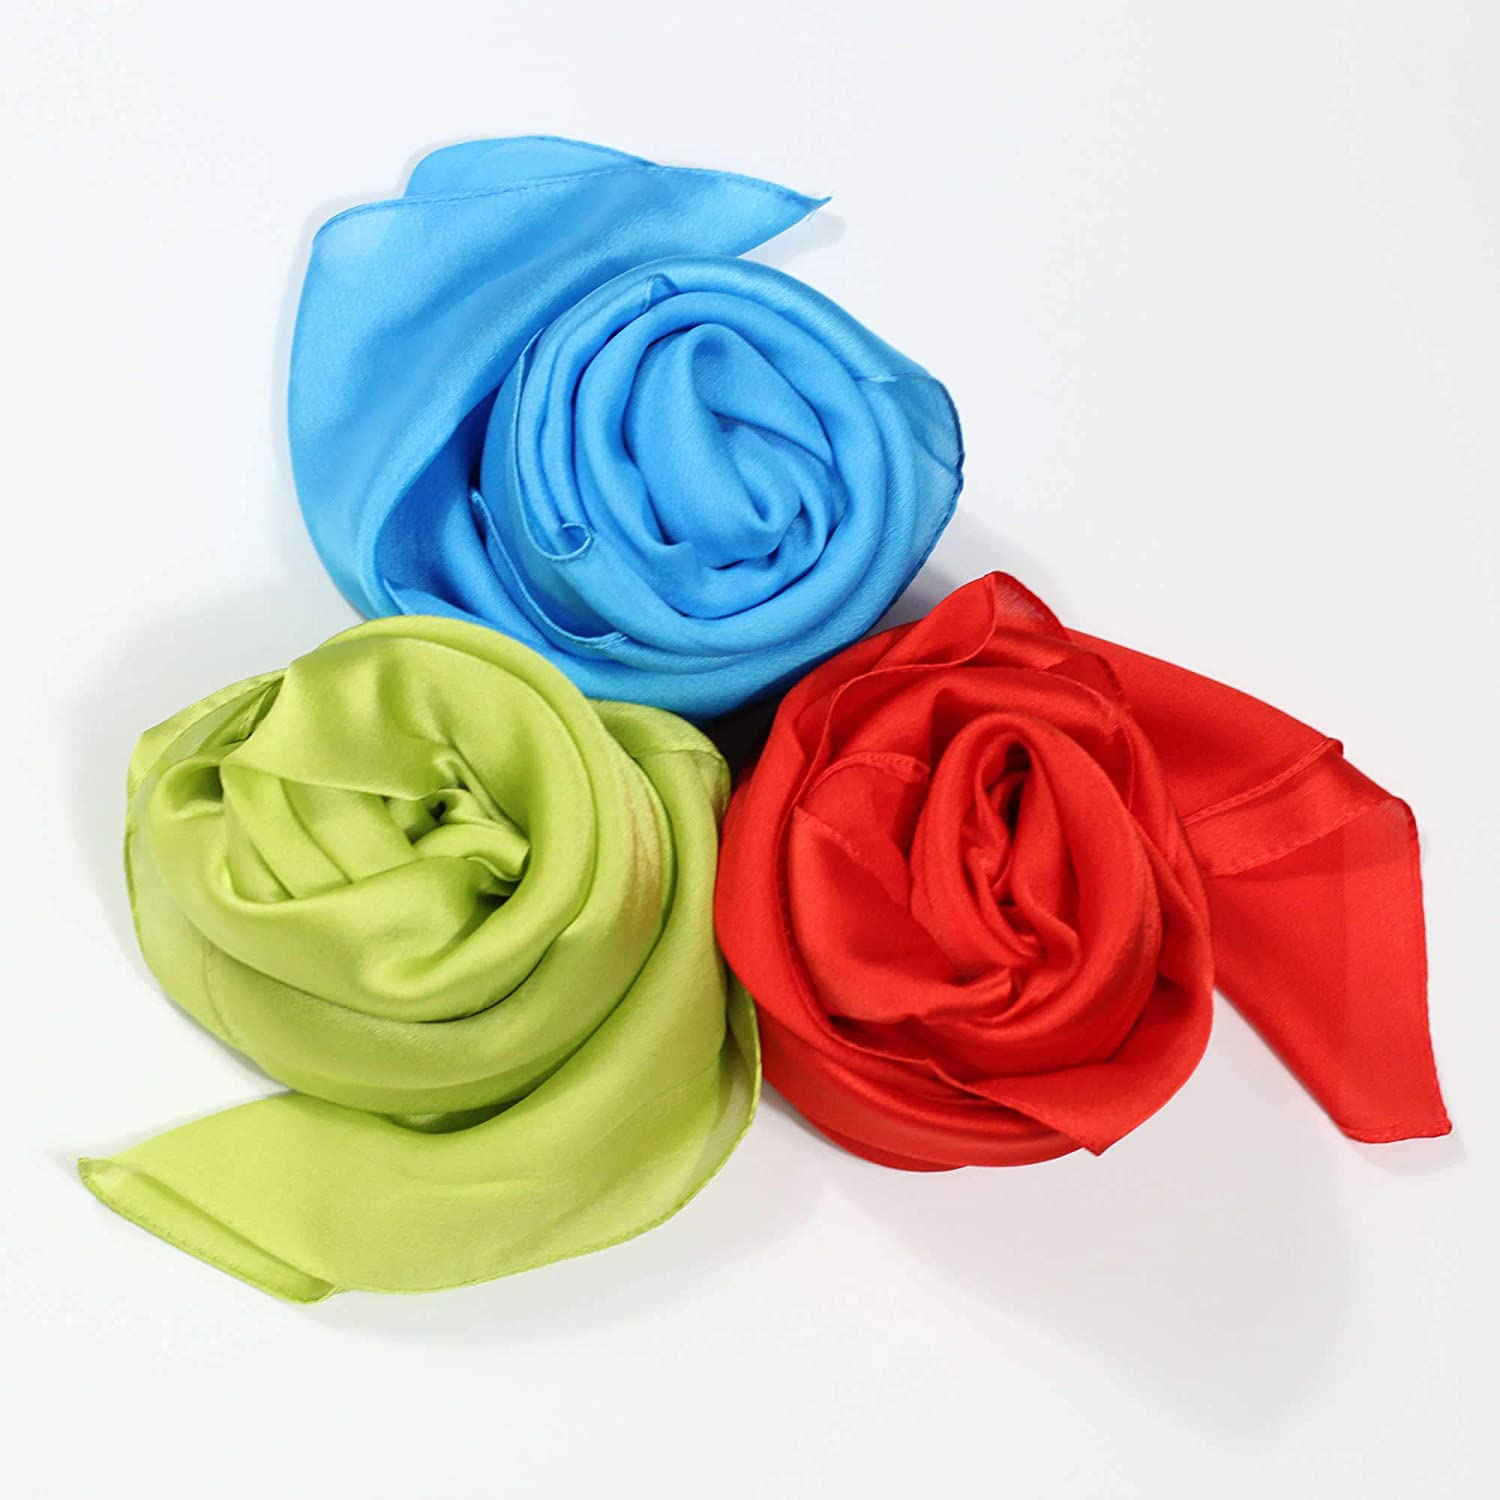 Lulu's Playhouse Play Limited time trial price Scarves Set of - 3 Virginia Beach Mall 35-in Waldorf Mo Square